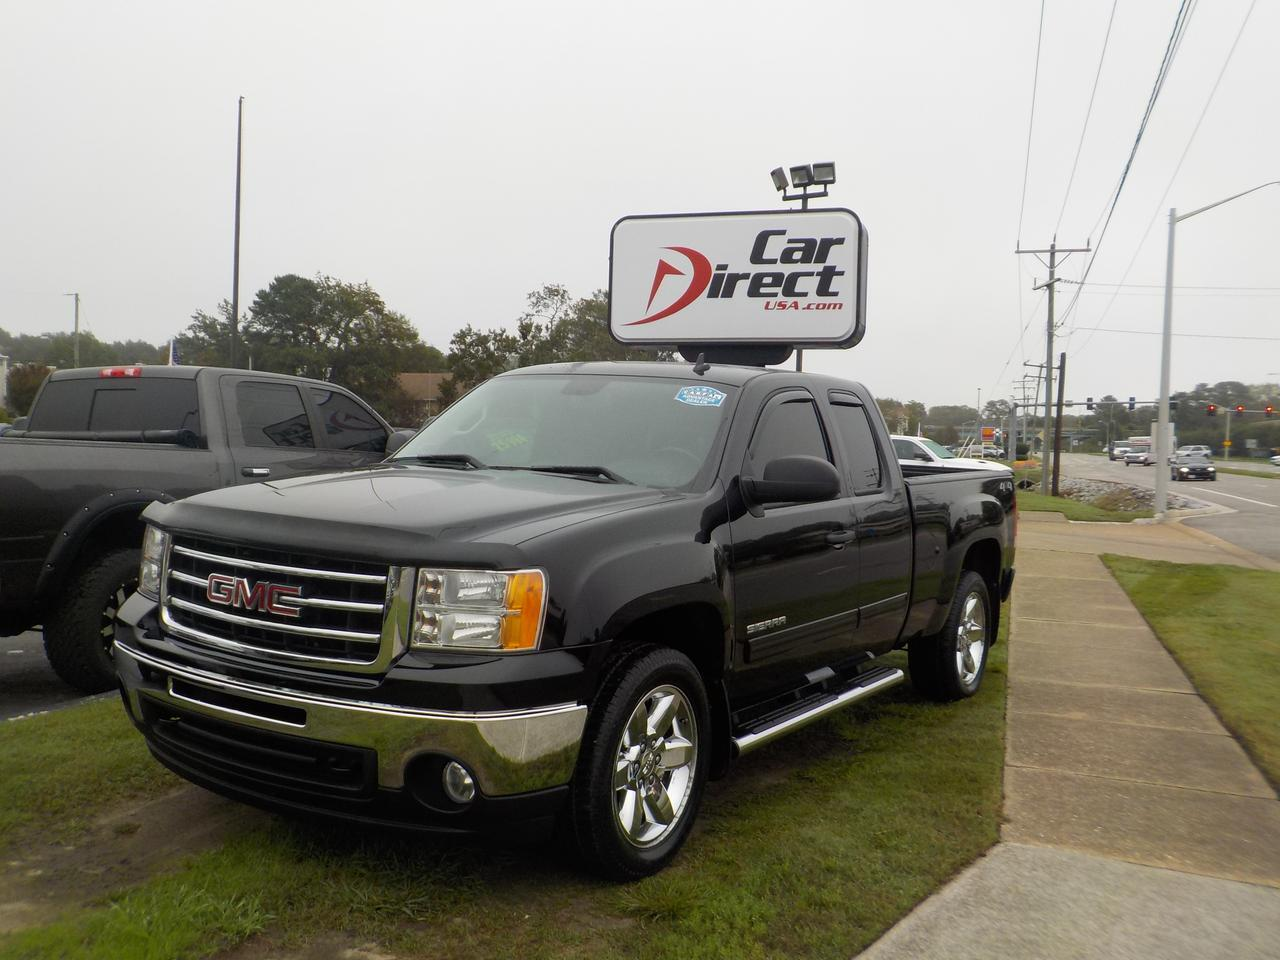 2013 GMC SIERRA 1500 EXTENDED CAB SLE 4X4, ONE OWNER, BLUETOOTH, REMOTE START, BACKUP CAM, TOW PACKAGE!